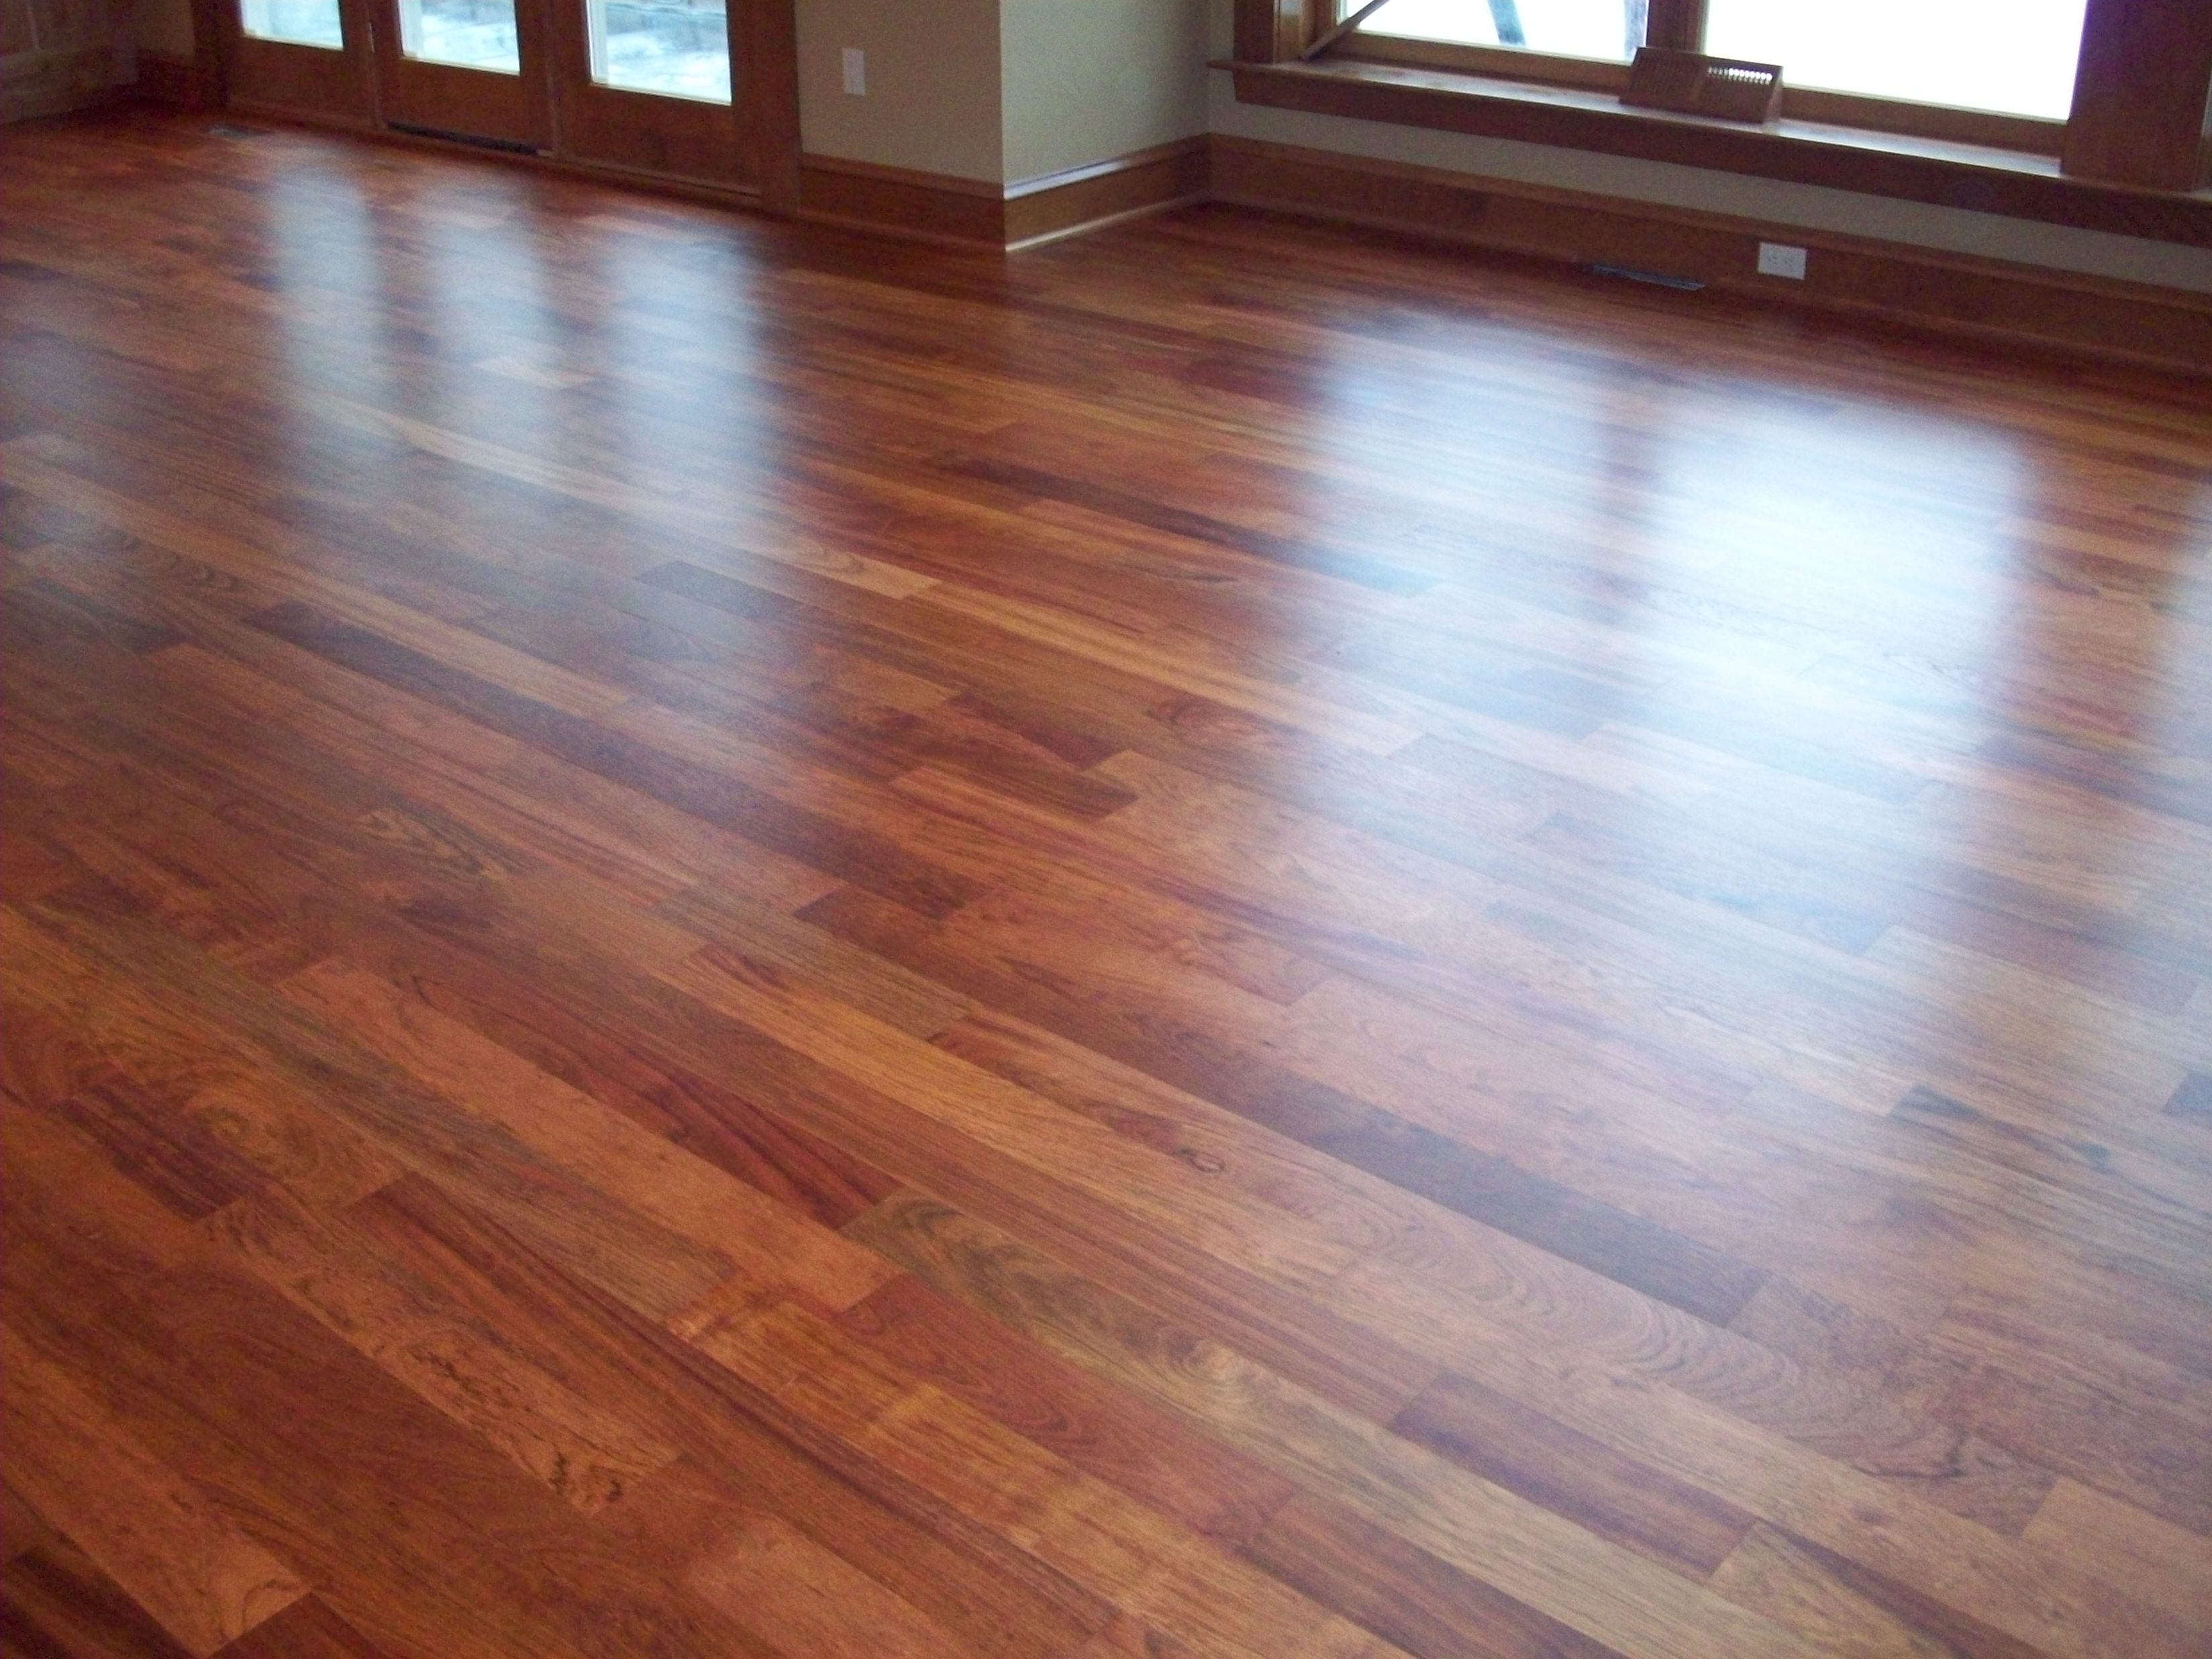 How to care for hardwood floorspeachesn clean wood floor refinish auburn al ppazfo